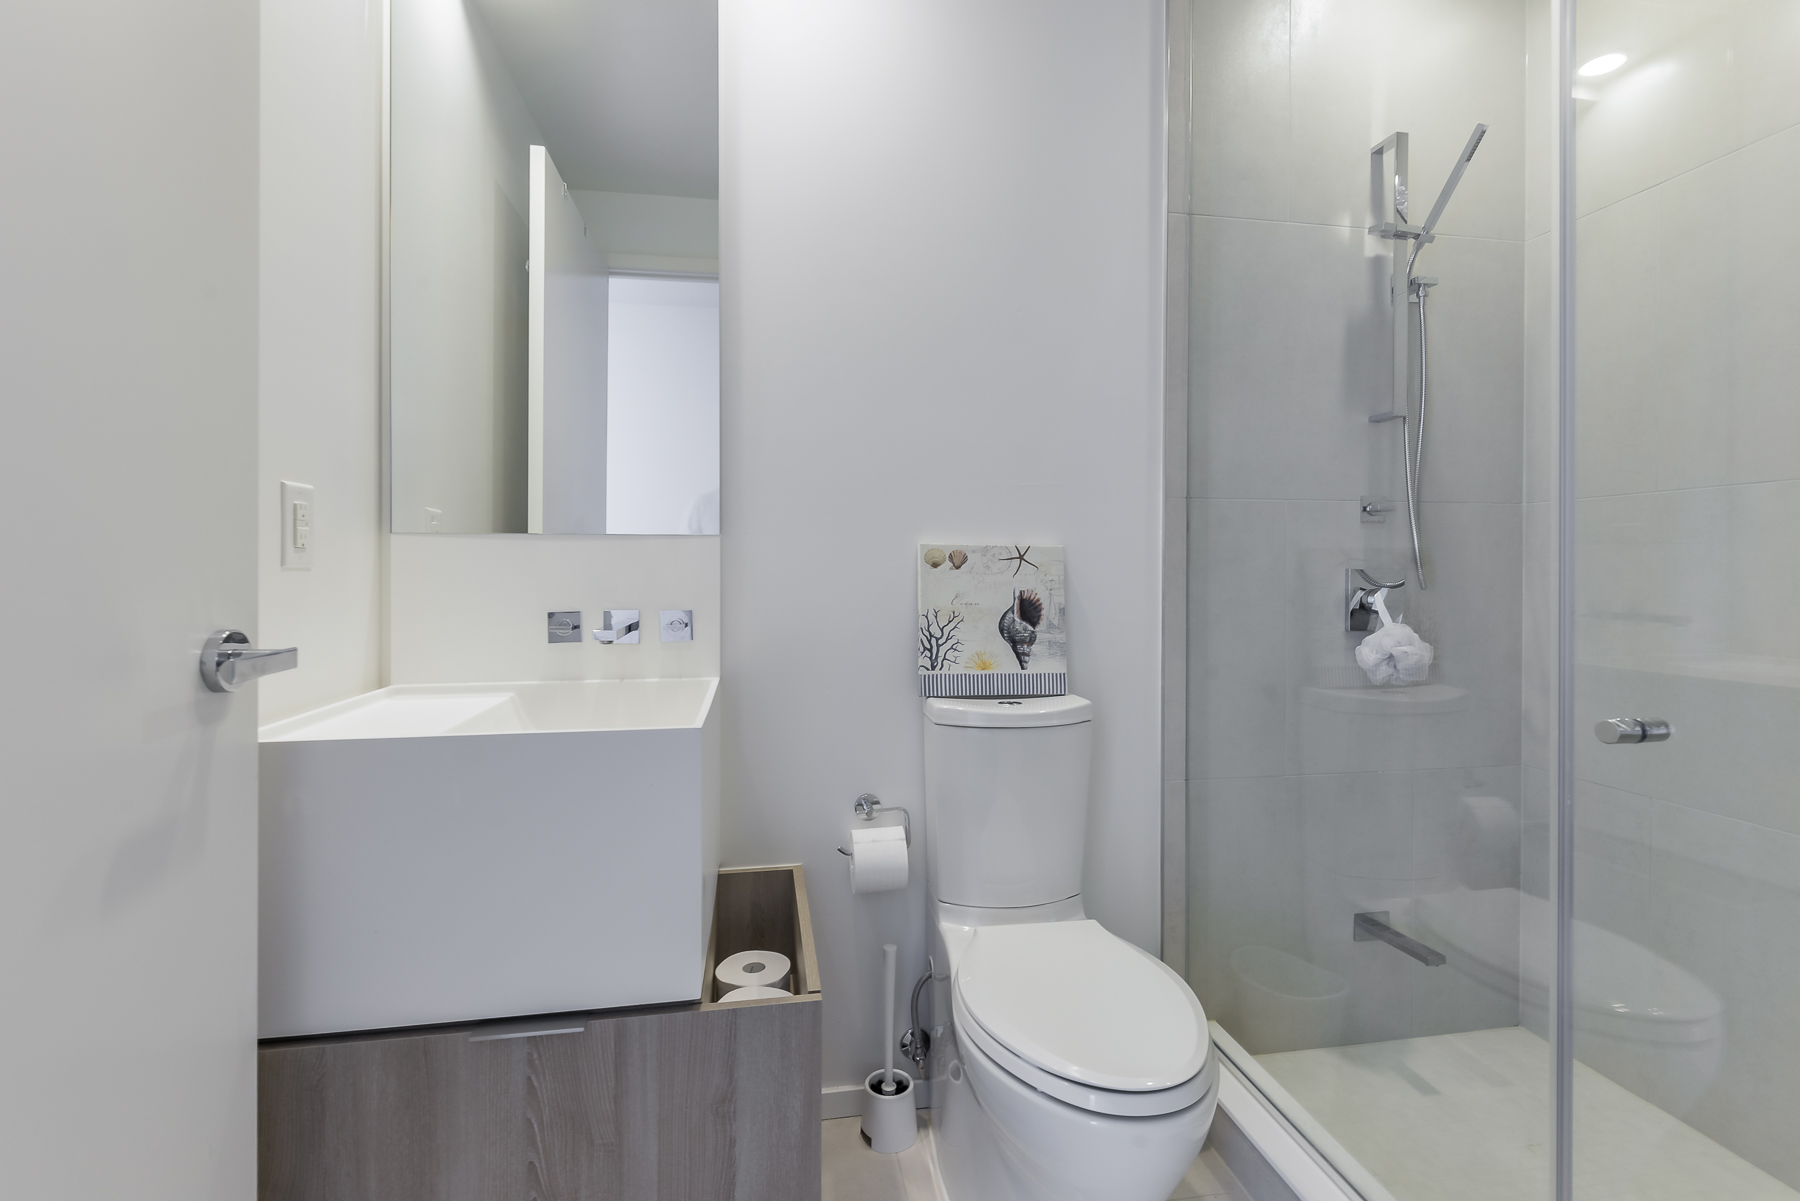 2nd washroom with walk-in shower - 1 Bloor St E Unit 310 Toronto.